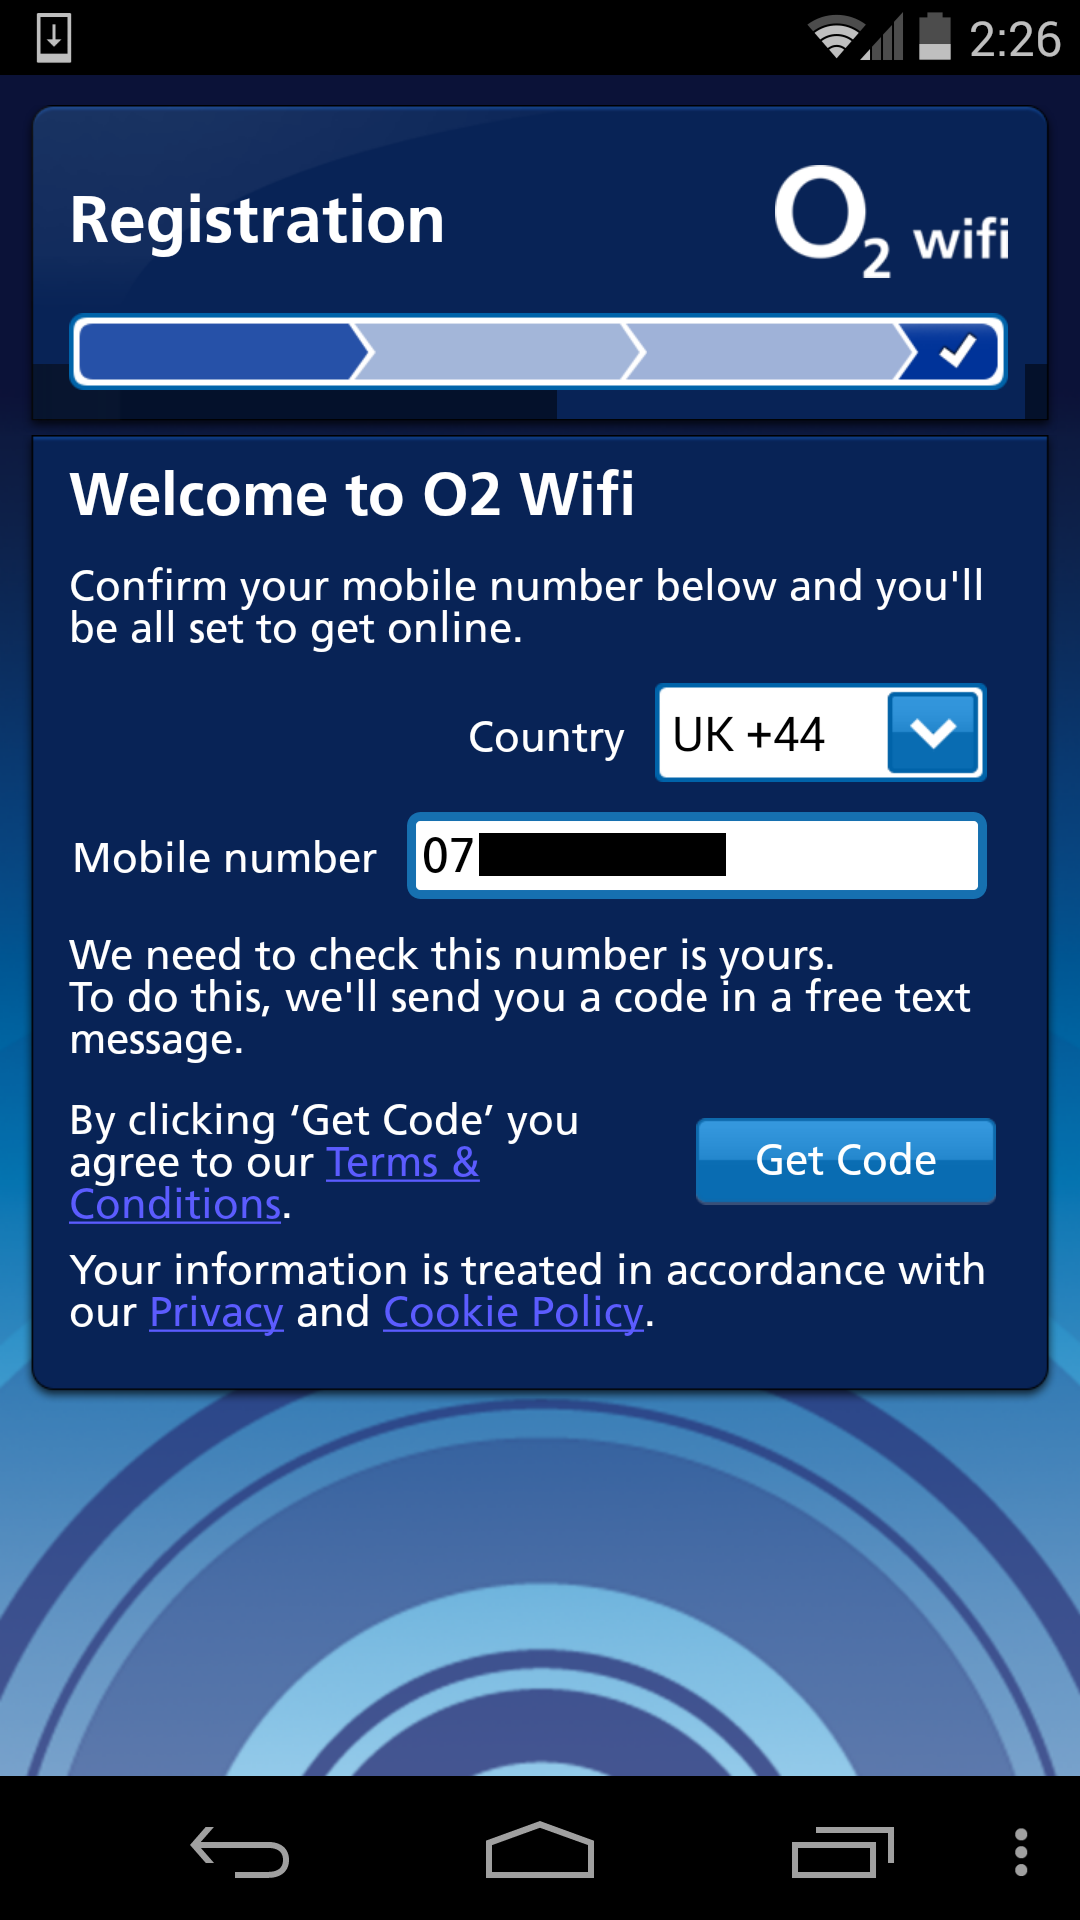 O2 Wifi app sends authentication and personal data over insecure